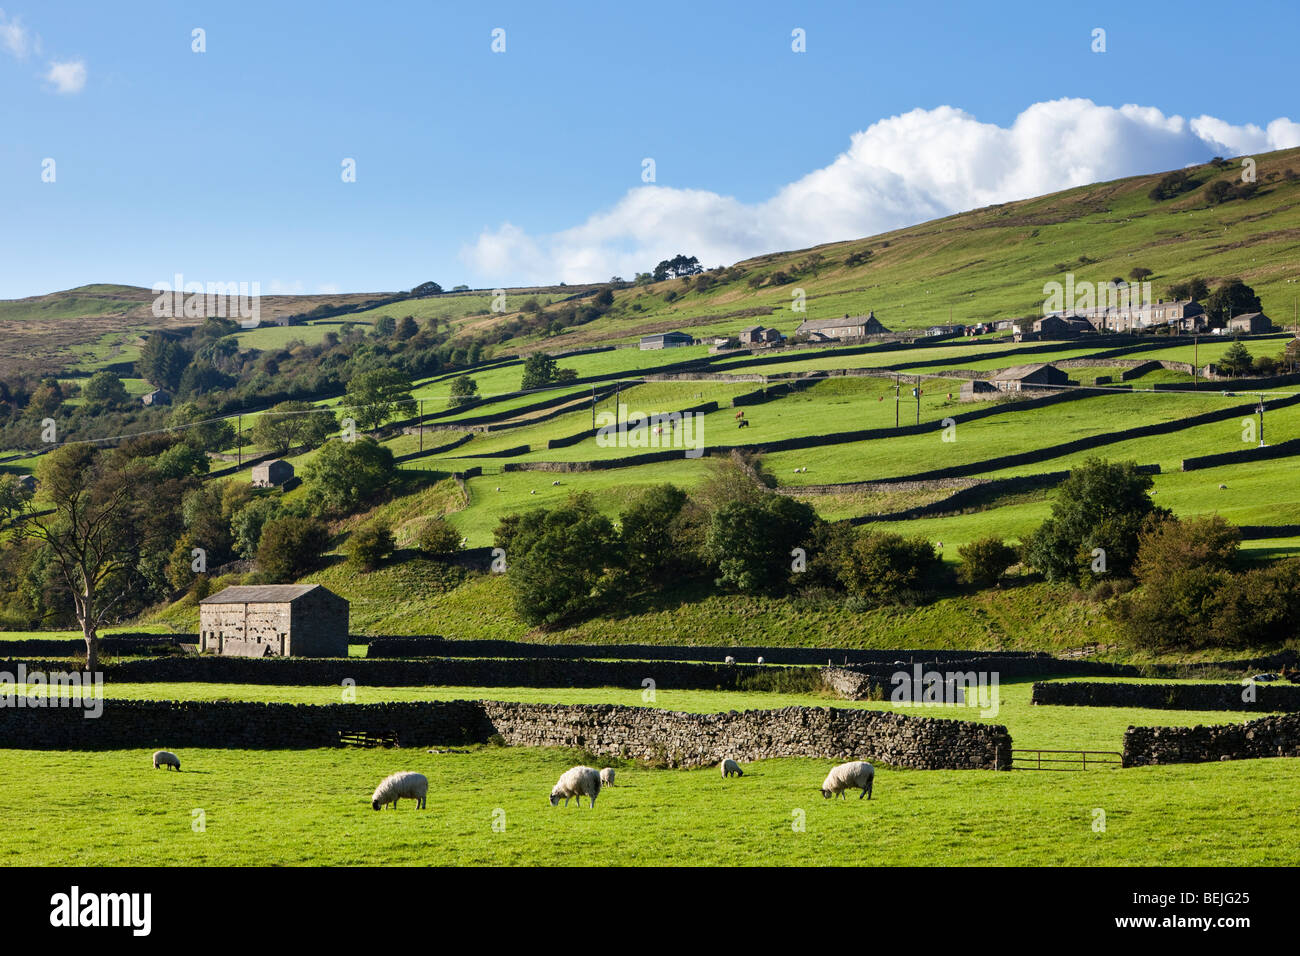 Yorkshire Dales countryside UK landscape, Swaledale, North Yorkshire, England, UK - Stock Image